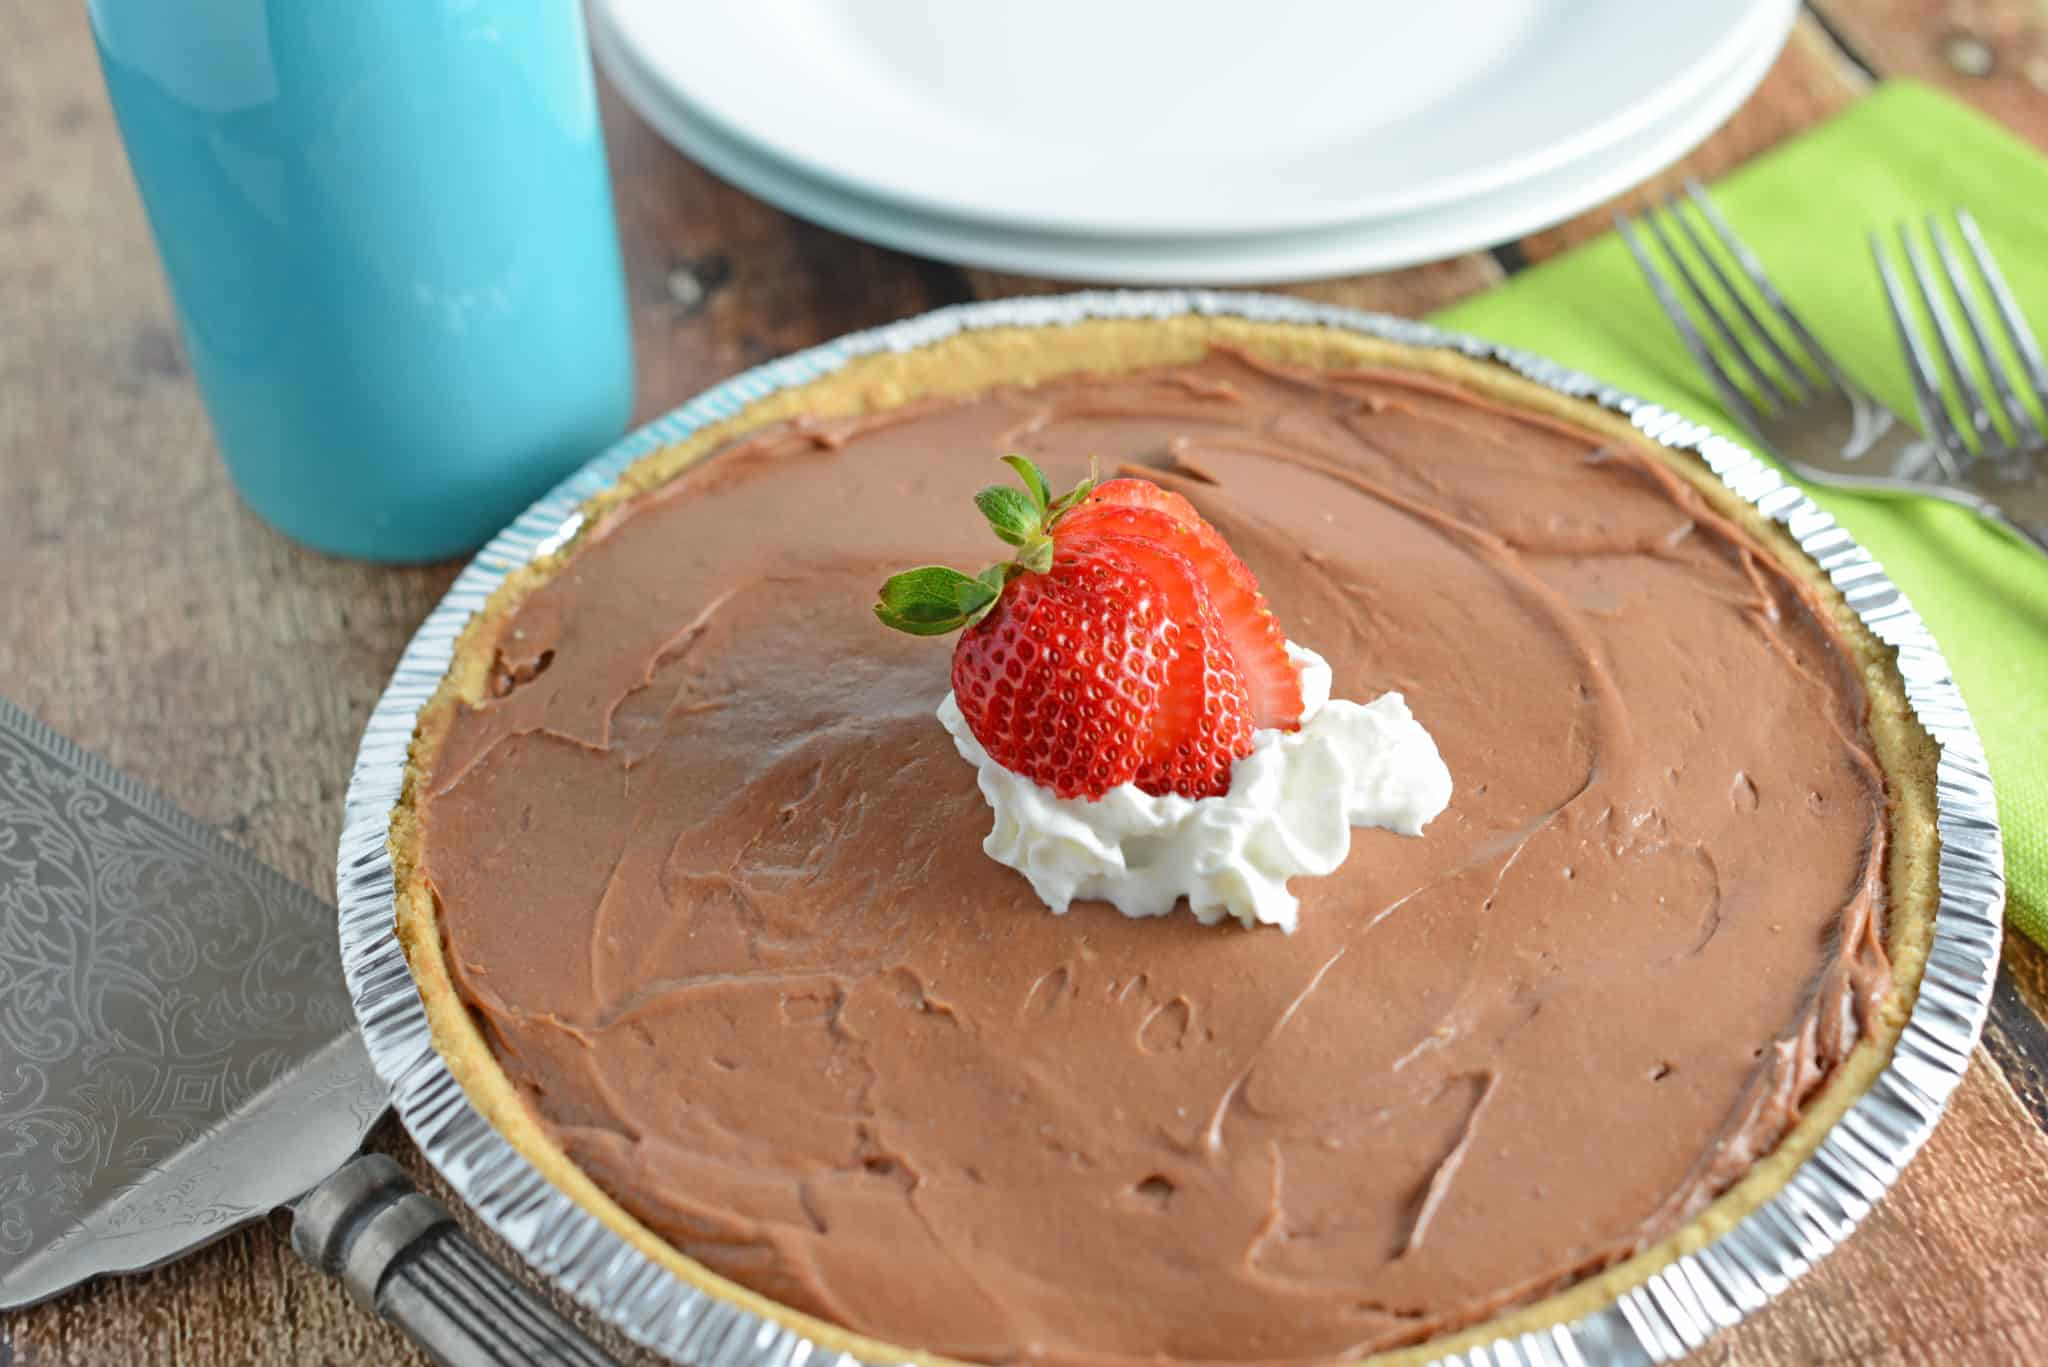 No bake chocolate cheesecake in a pie tin